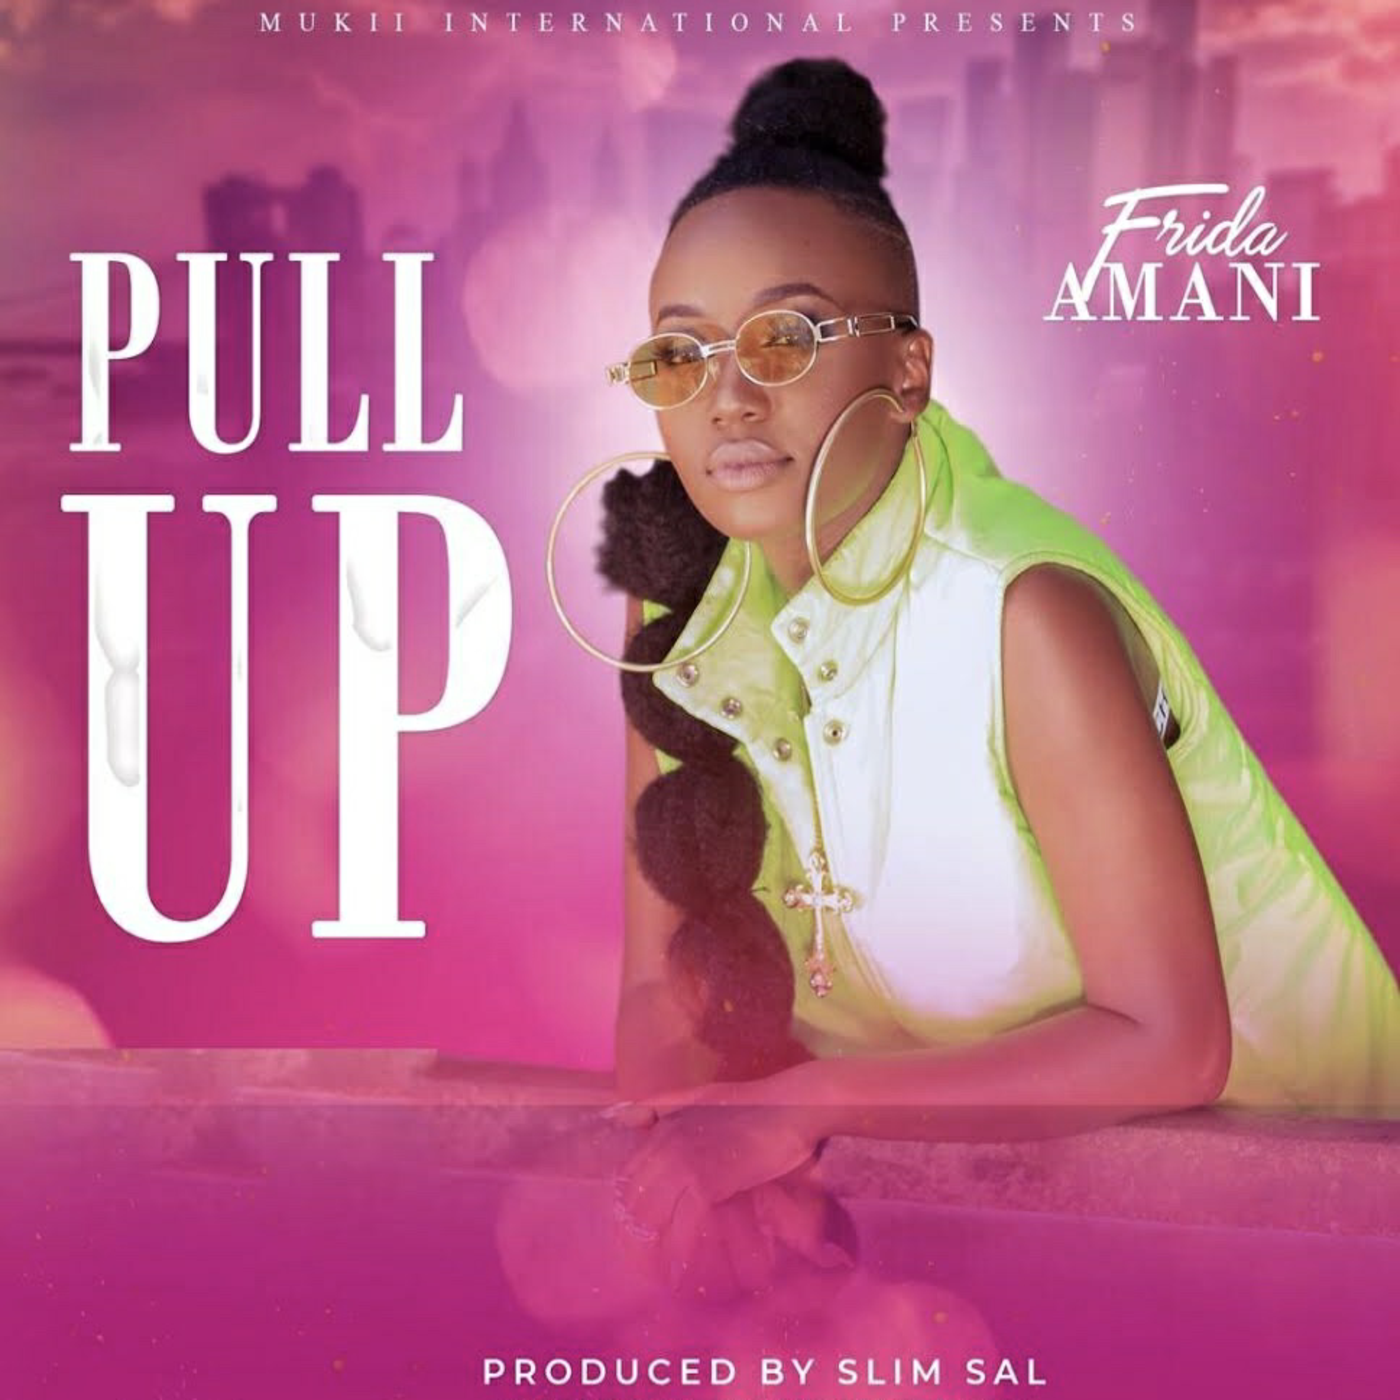 PULL UP FINAL - Frida Amani (Queen Fifi) | Mkito